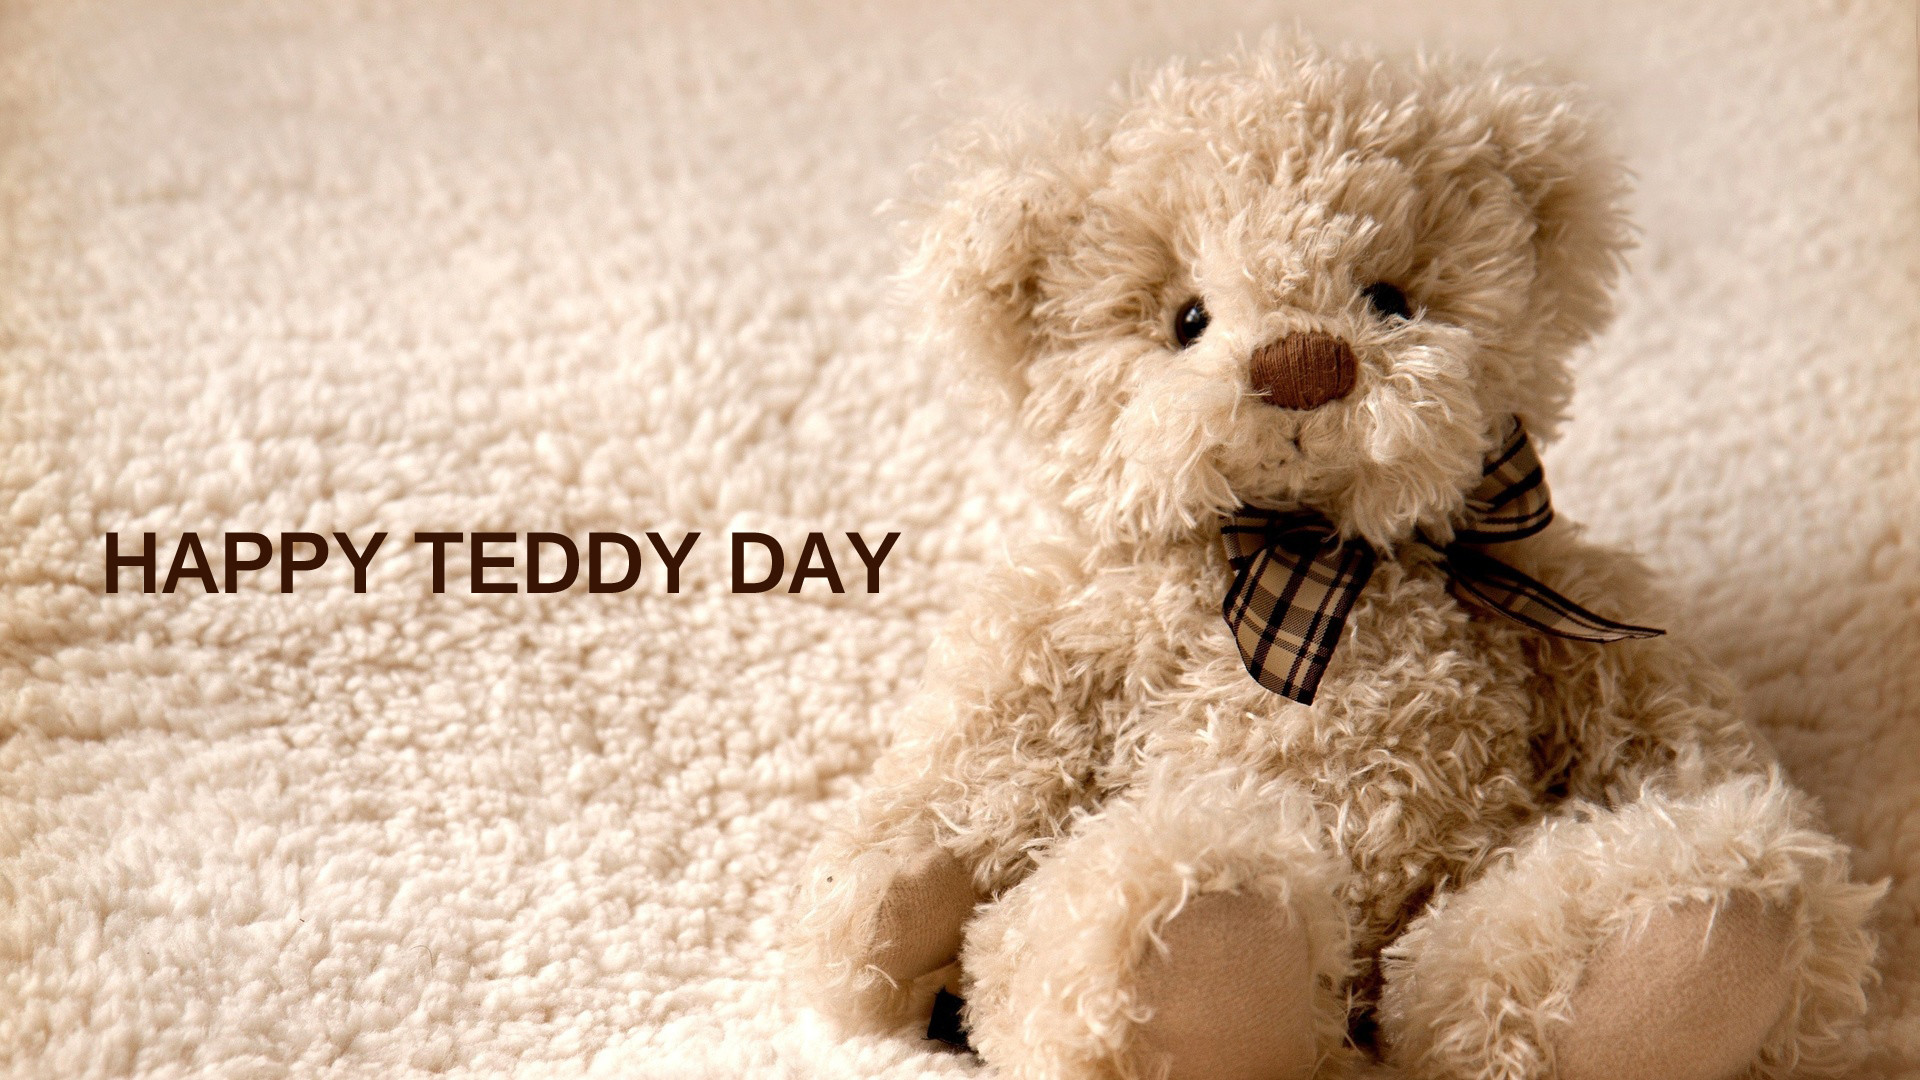 … teddy day image for bae …